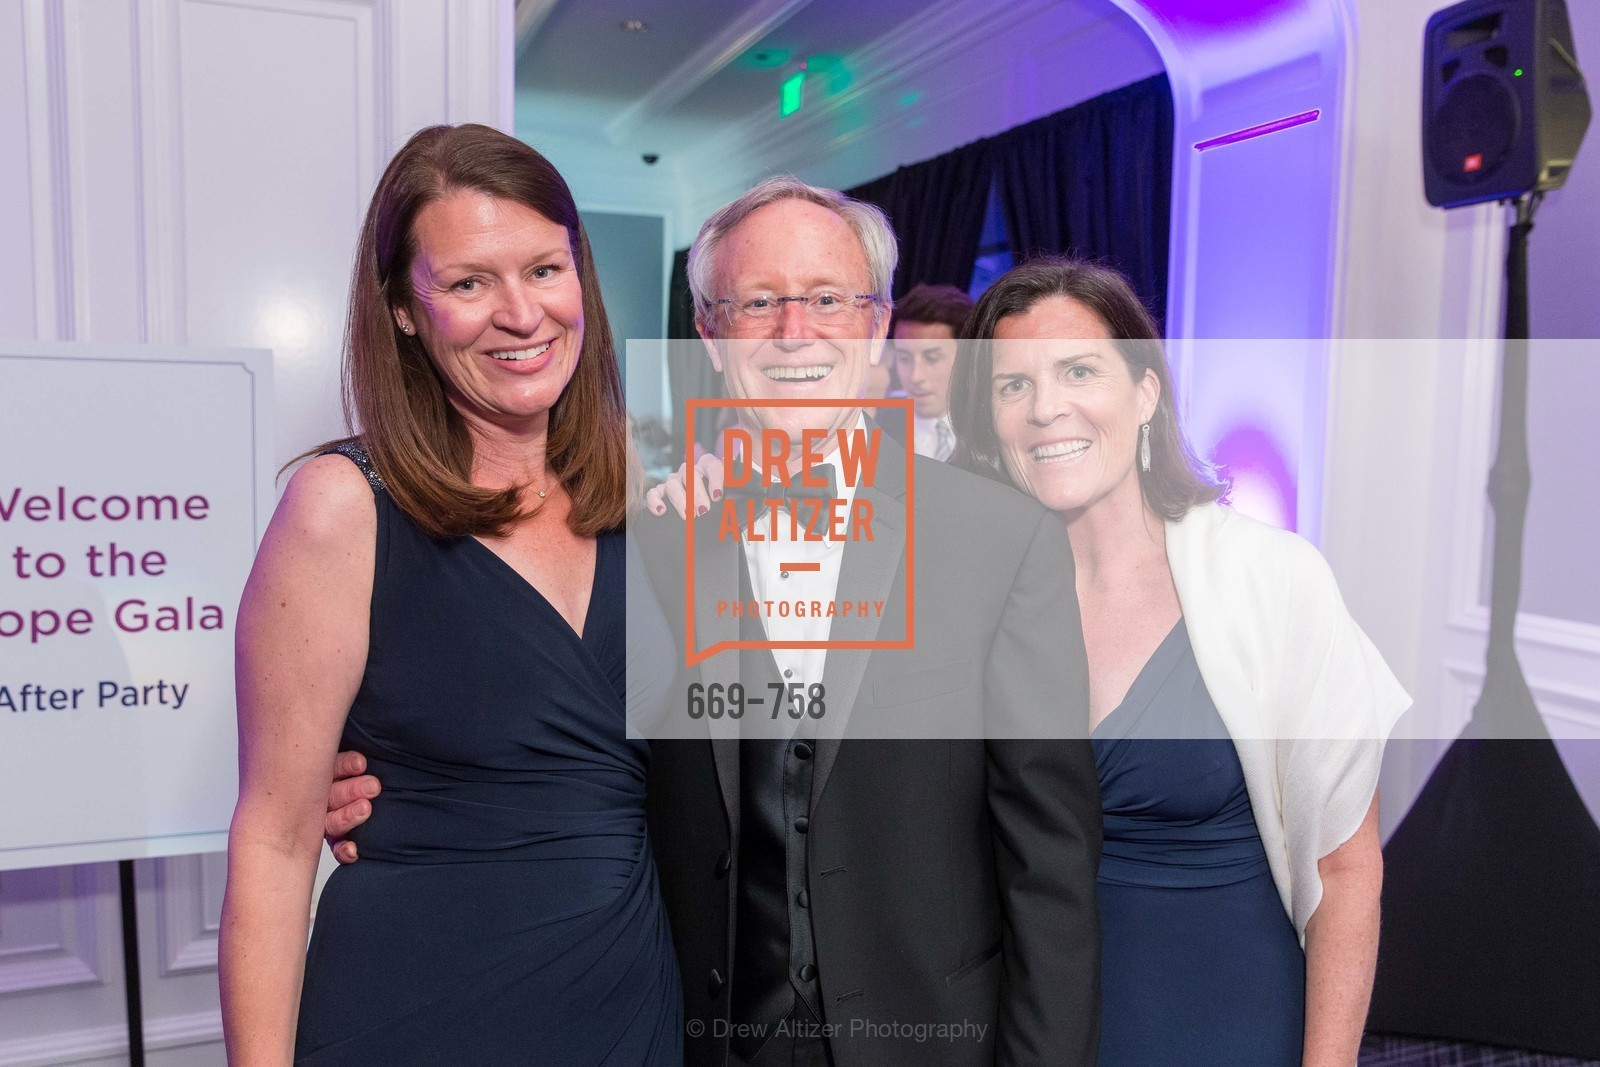 Shelly Jensen, Dayton Coles, JUVENILE DIABETES RESEARCH FOUNDATION  Hope Gala, US, May 30th, 2015,Drew Altizer, Drew Altizer Photography, full-service agency, private events, San Francisco photographer, photographer california